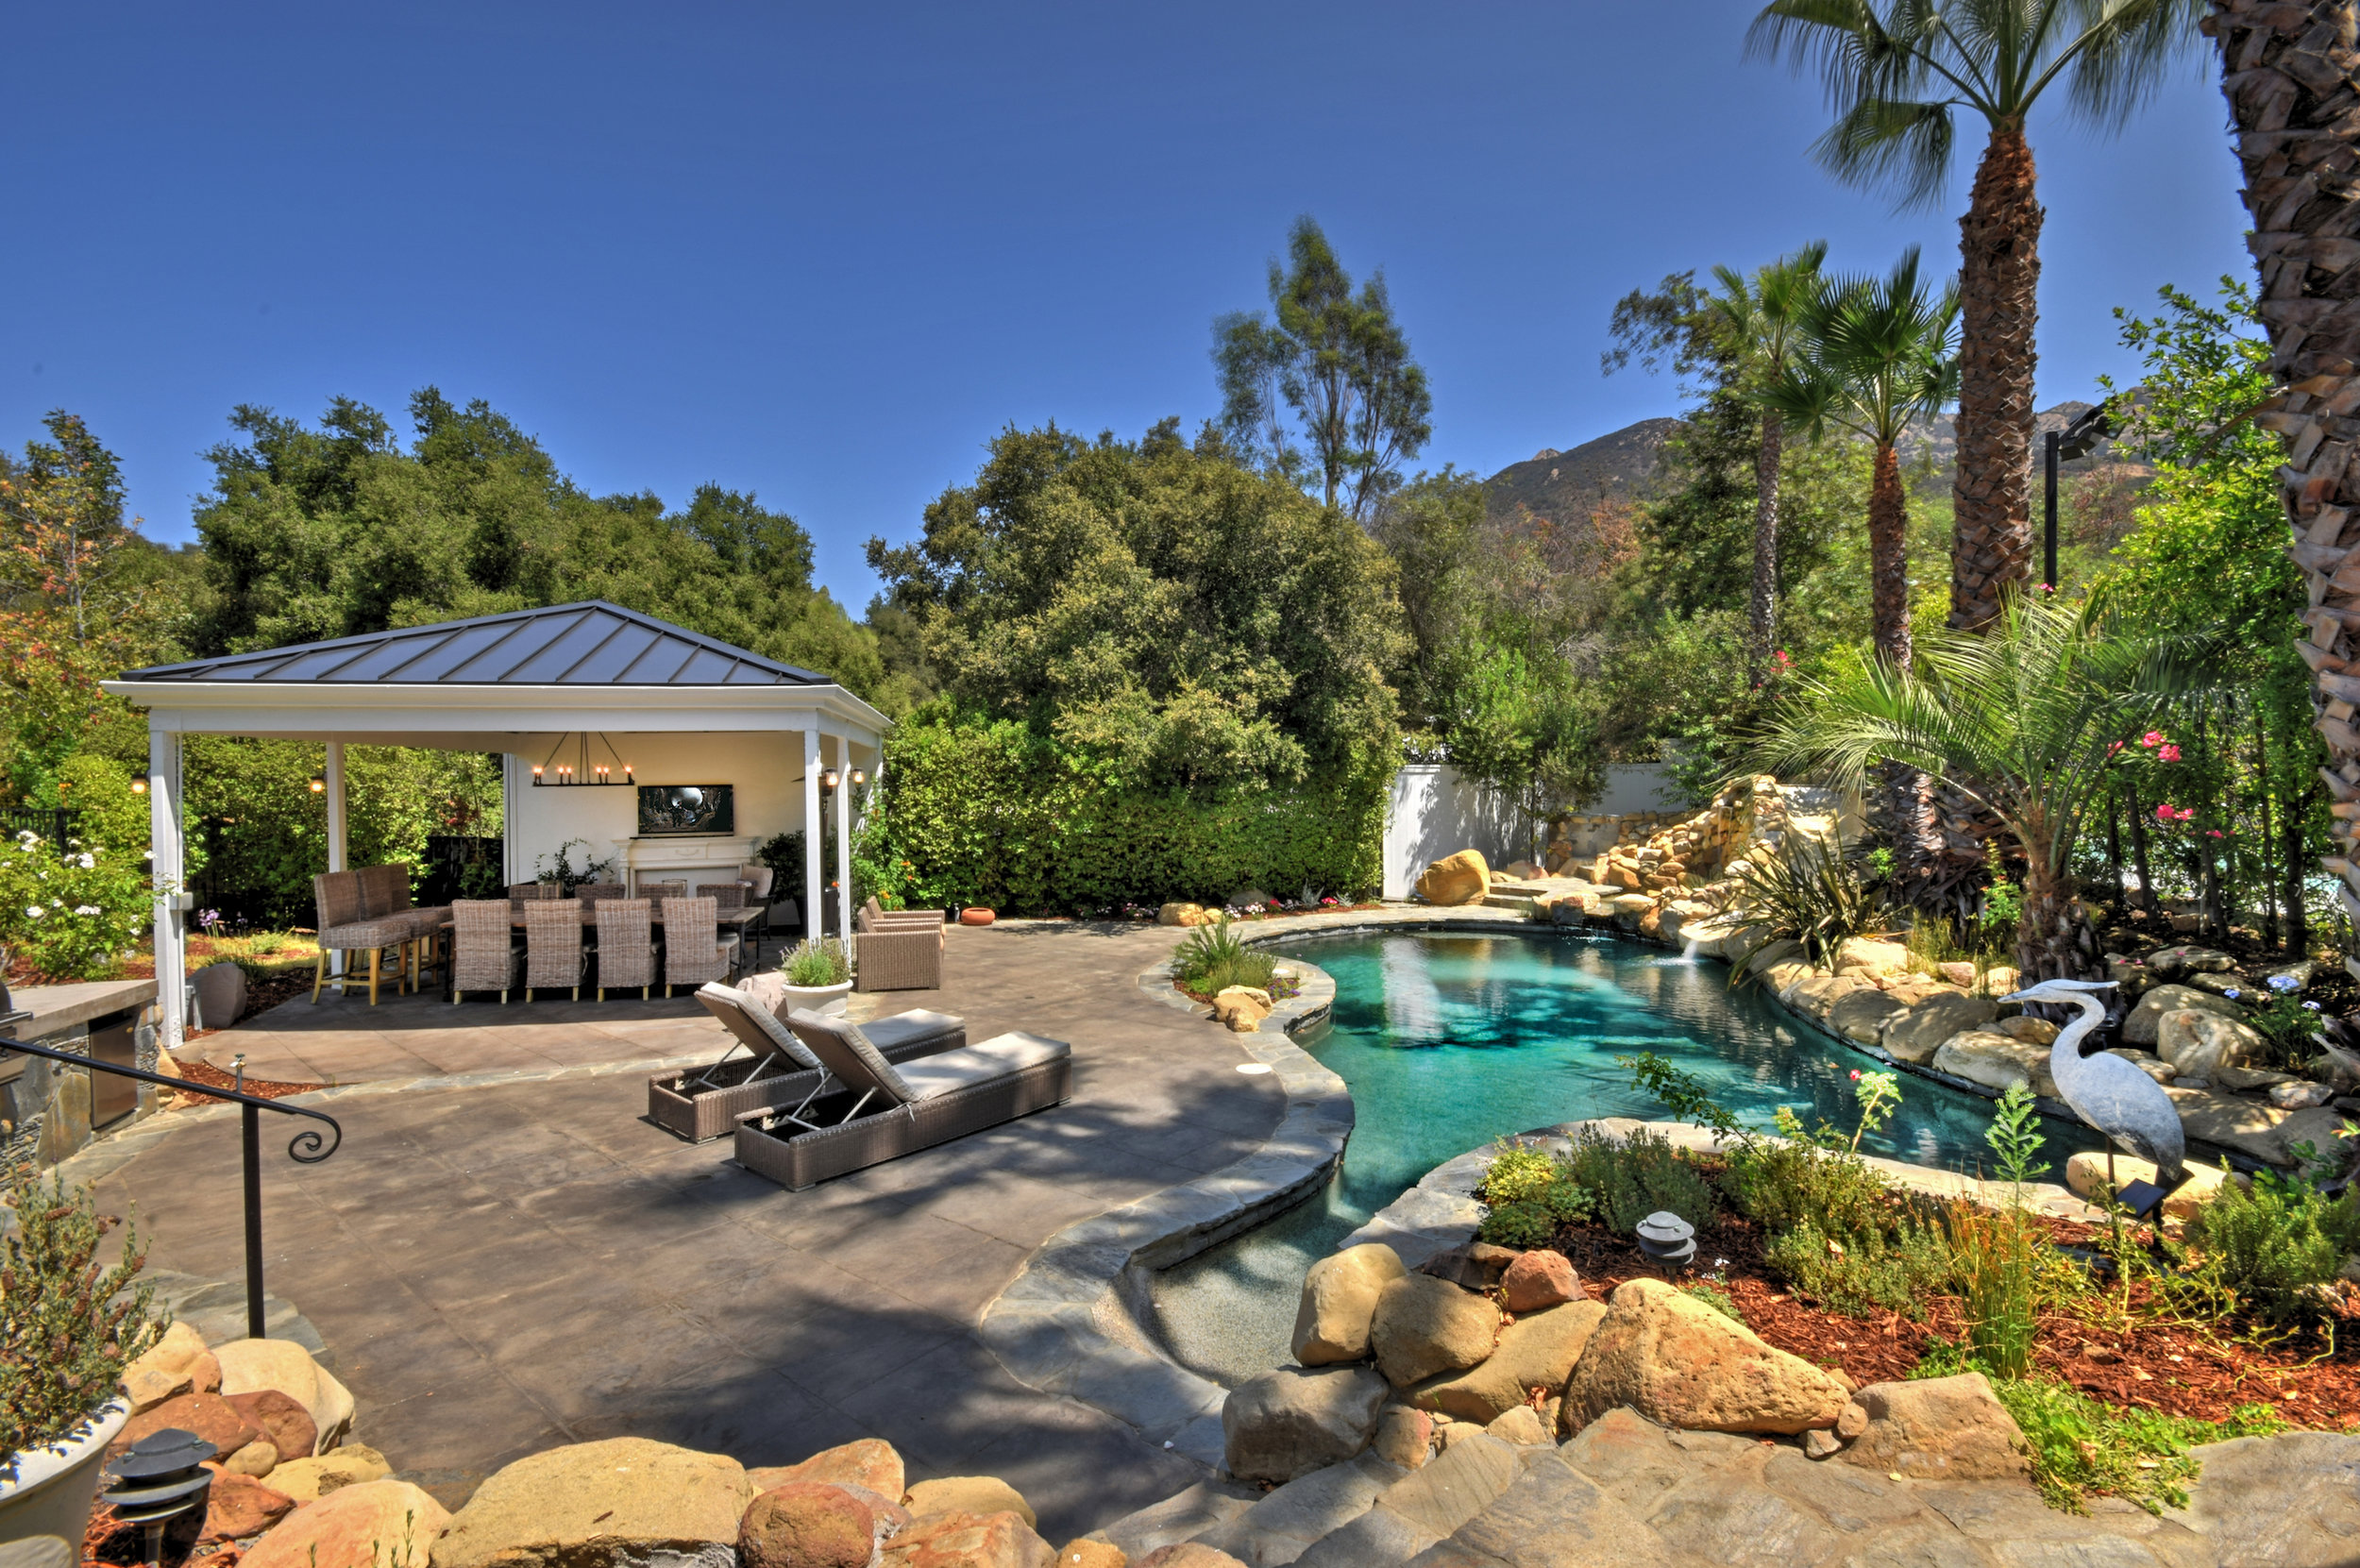 005 Pool 560 Cold Canyon Road For Sale Lease The Malibu Life Team Luxury Real Estate.jpg